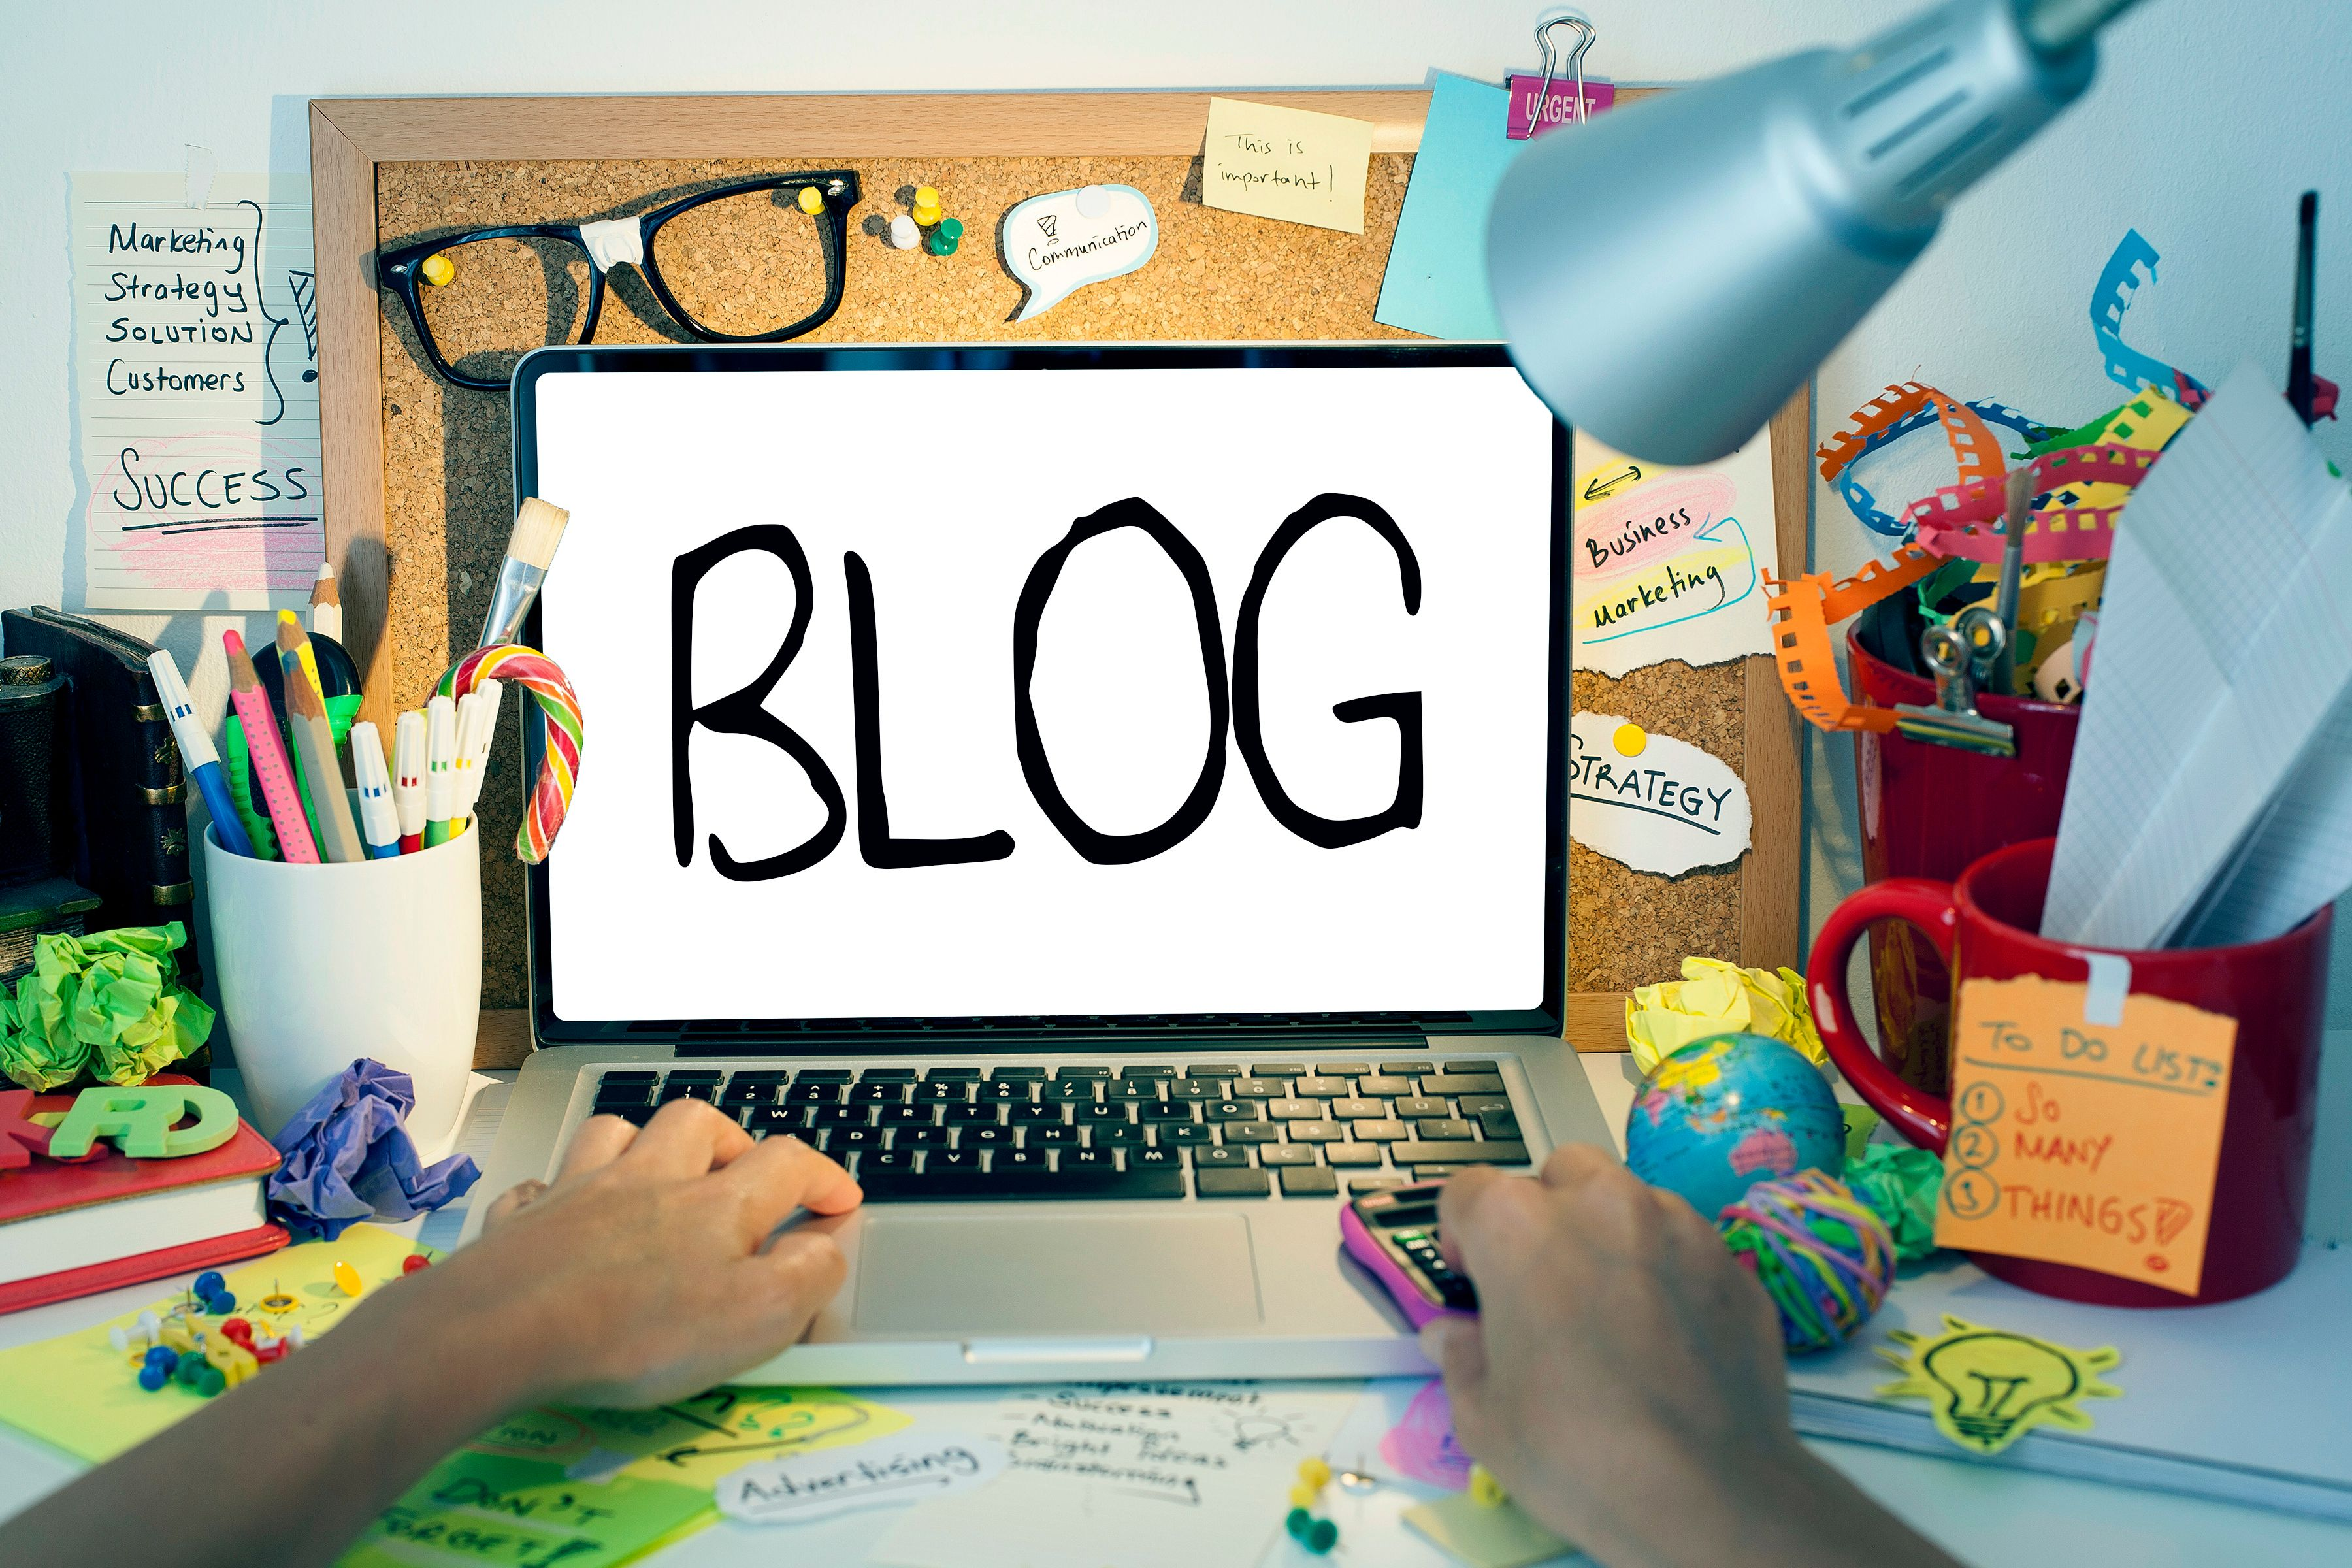 Content Ideas for Your Next Business Blog